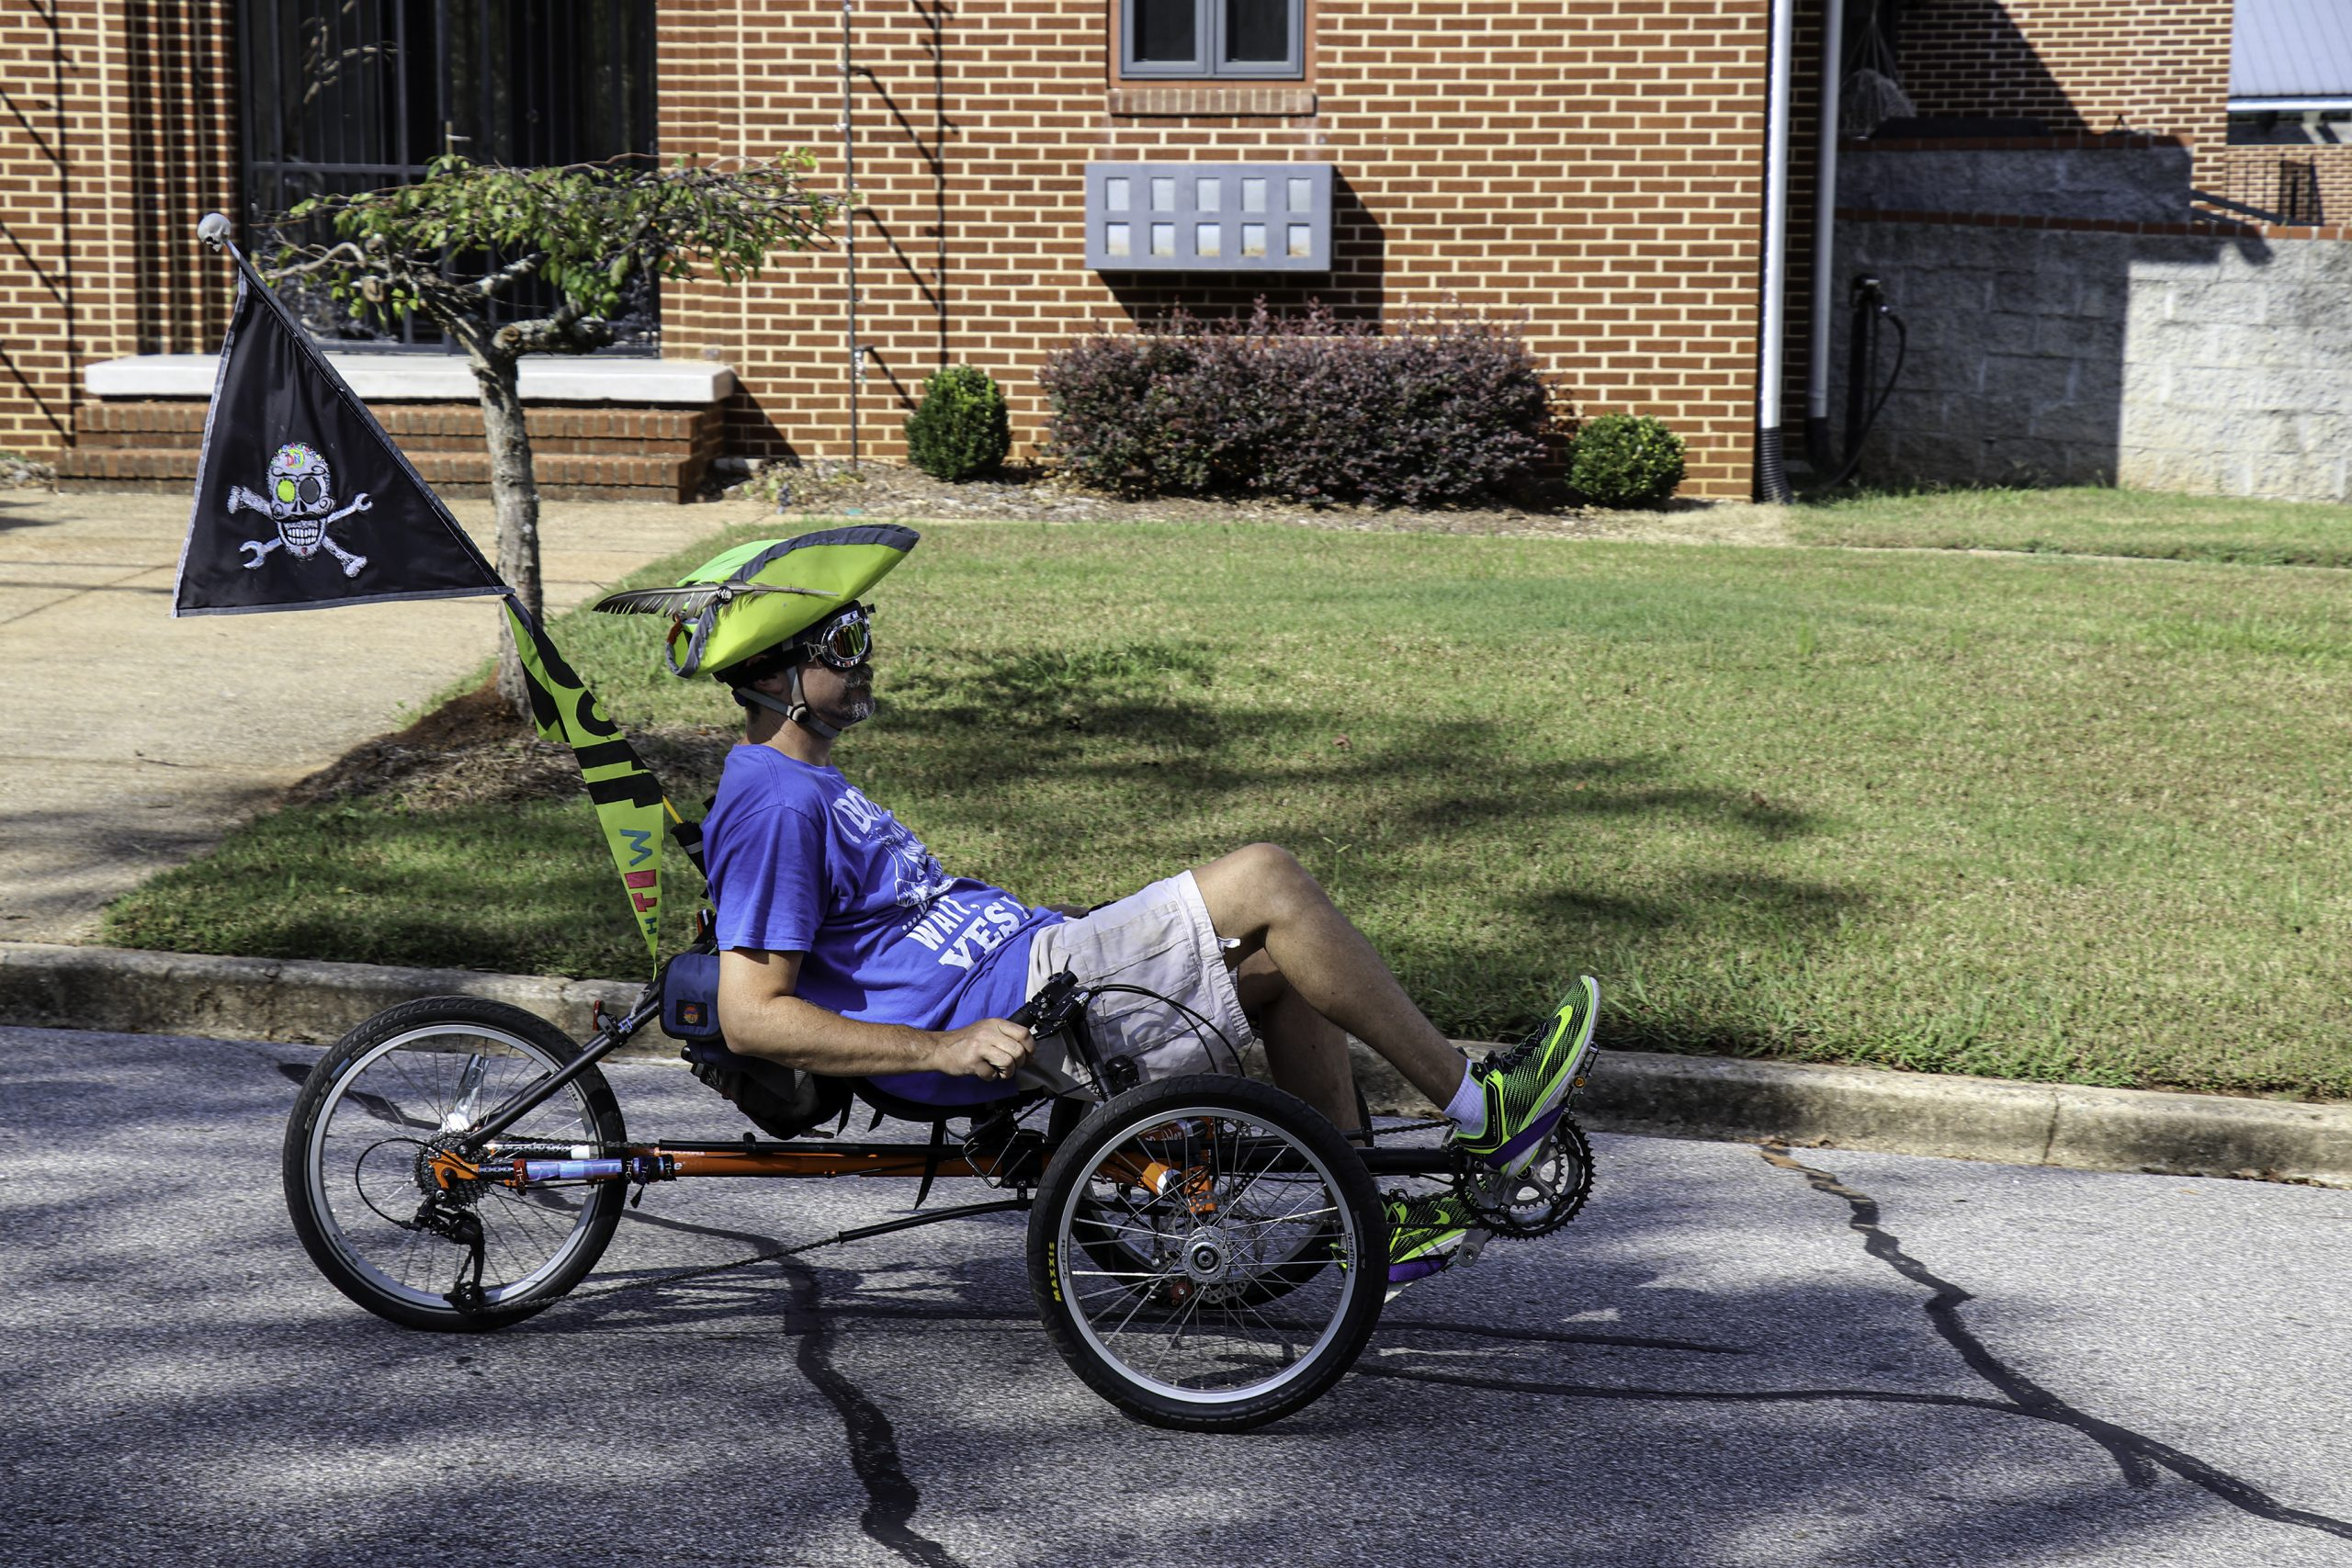 Athens, Georgia - October 15, 2017: A man on a recumbent tricycle rides dressed as a pirate during Boo-le-Bark on the Boulevard, an annual community parade and fundraiser for the Athenspets non-profit.